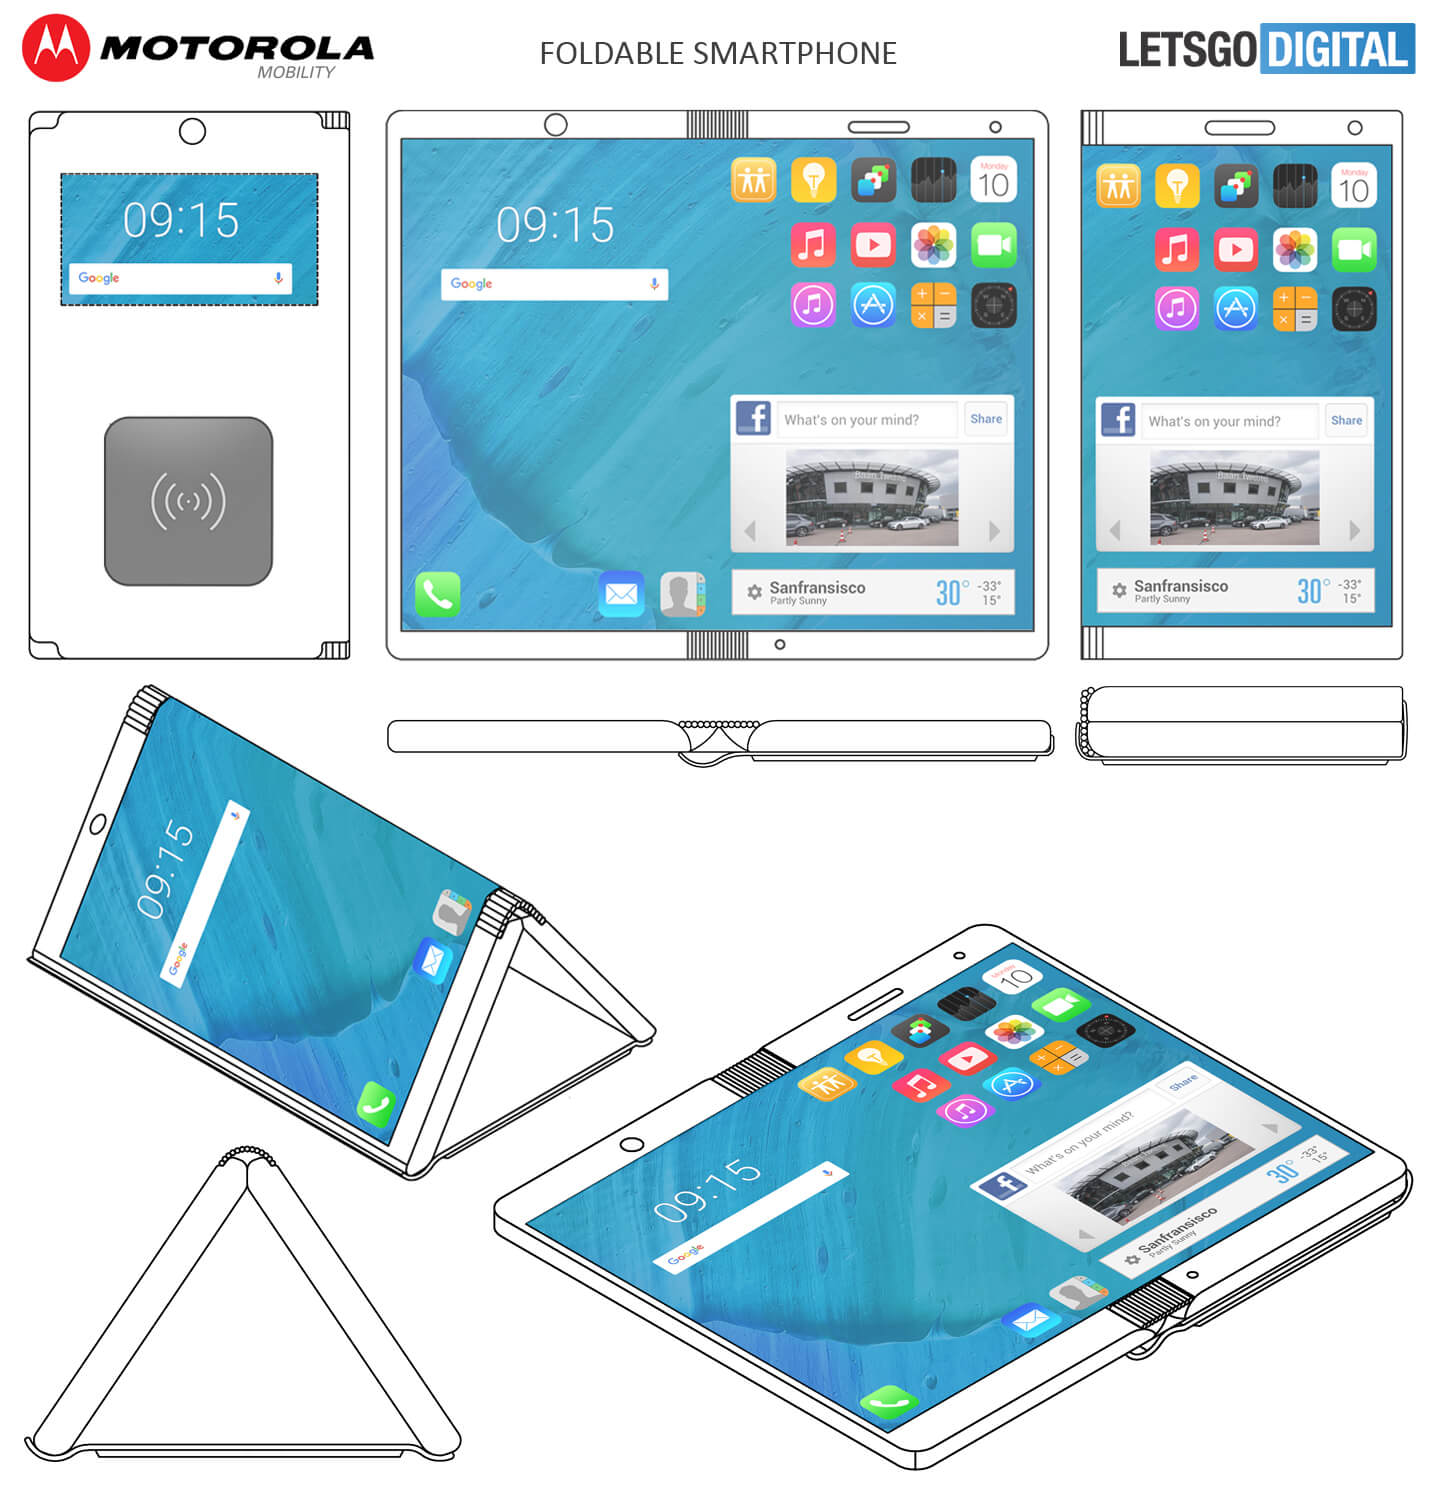 Microsoft's folding phone/tablet concept has three screens -- one in the hinge